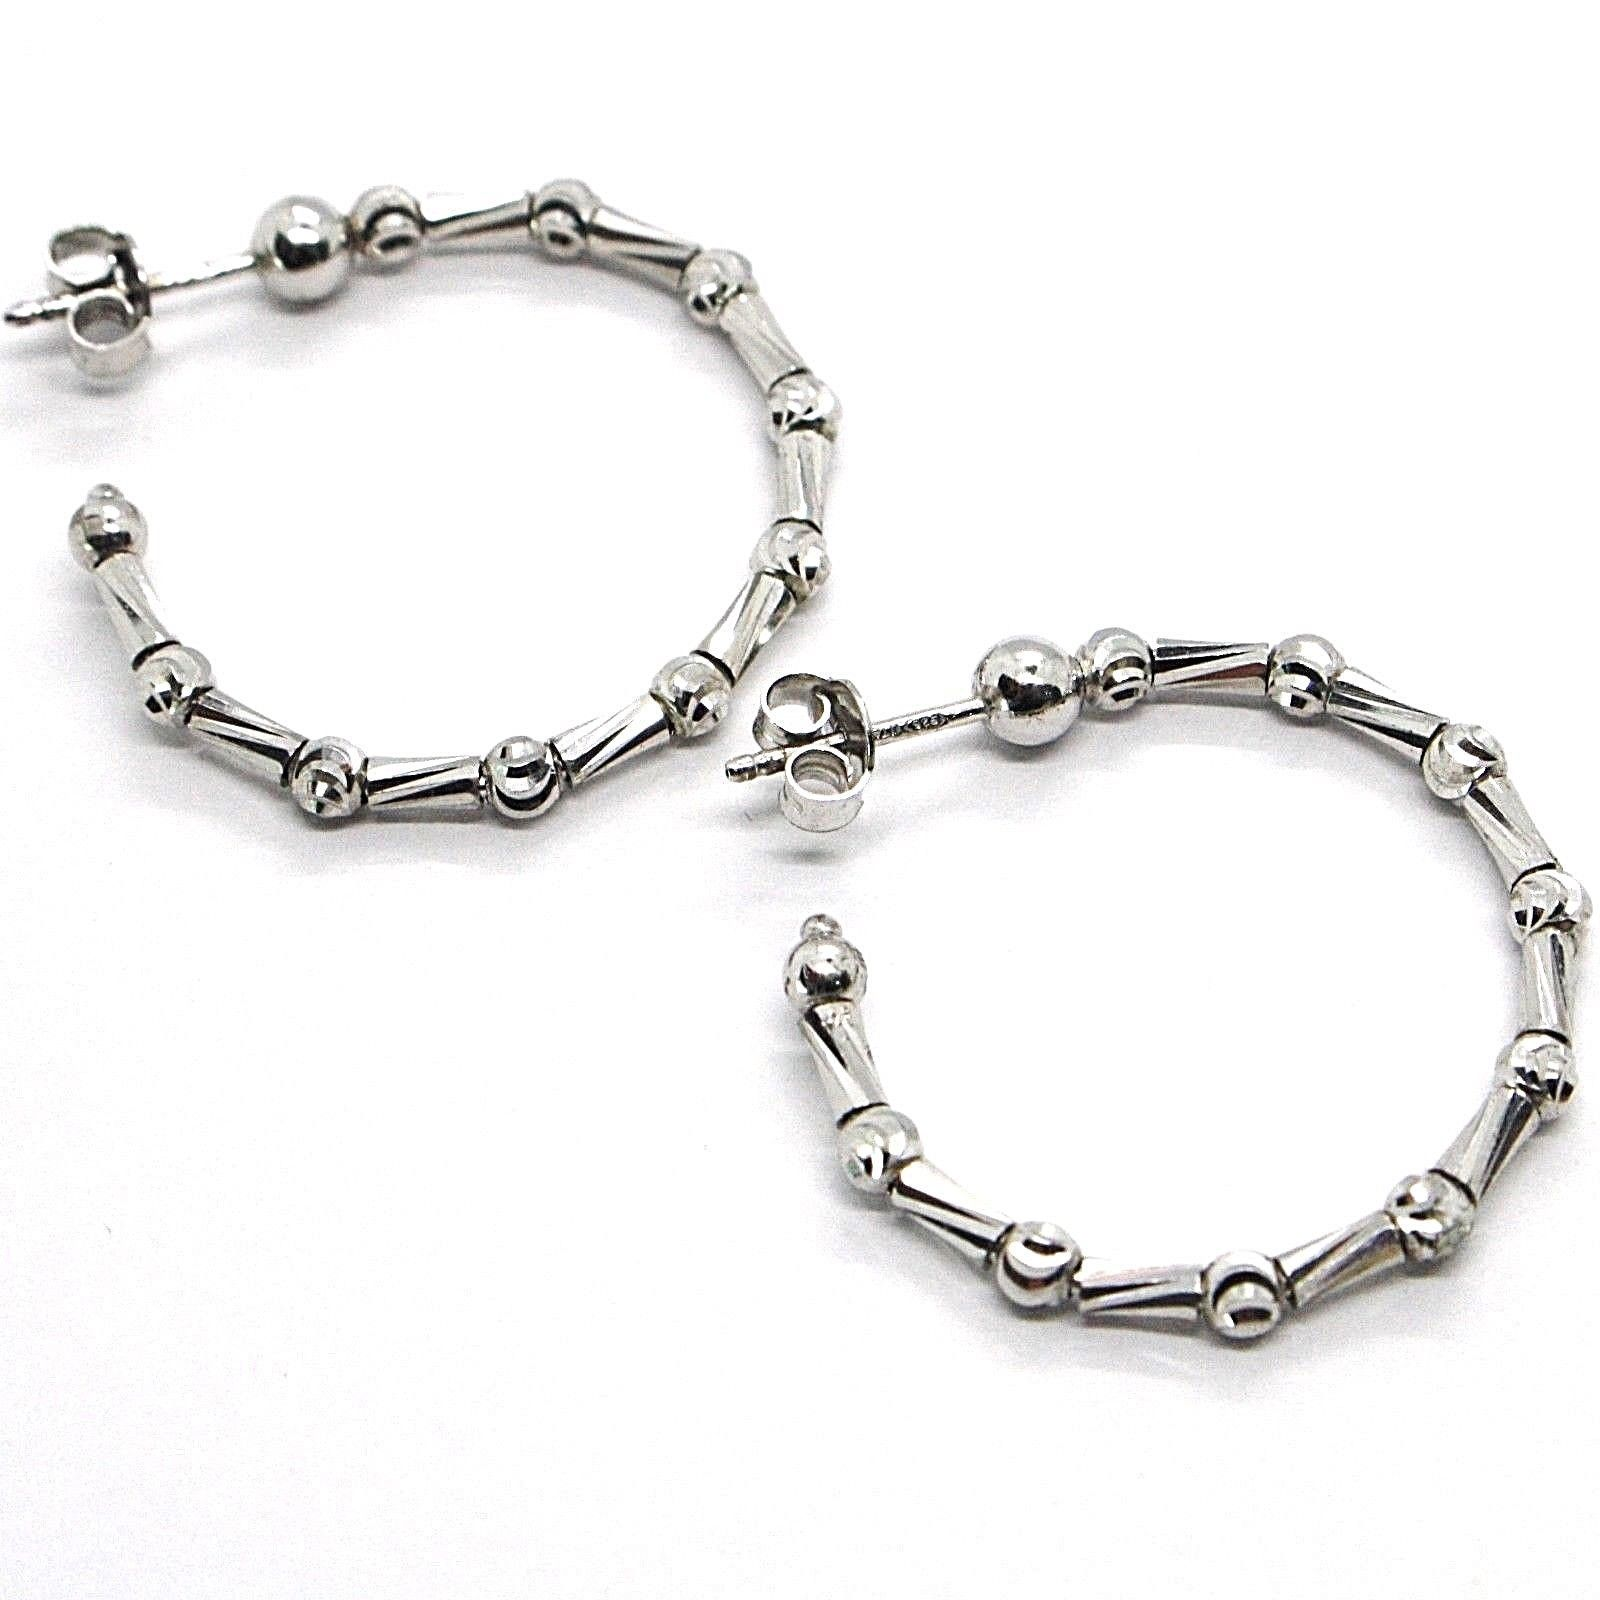 925 STERLING SILVER OFFICINA BERNARDI DIAMOND CUT HOOPS EARRINGS SPHERES TUBE